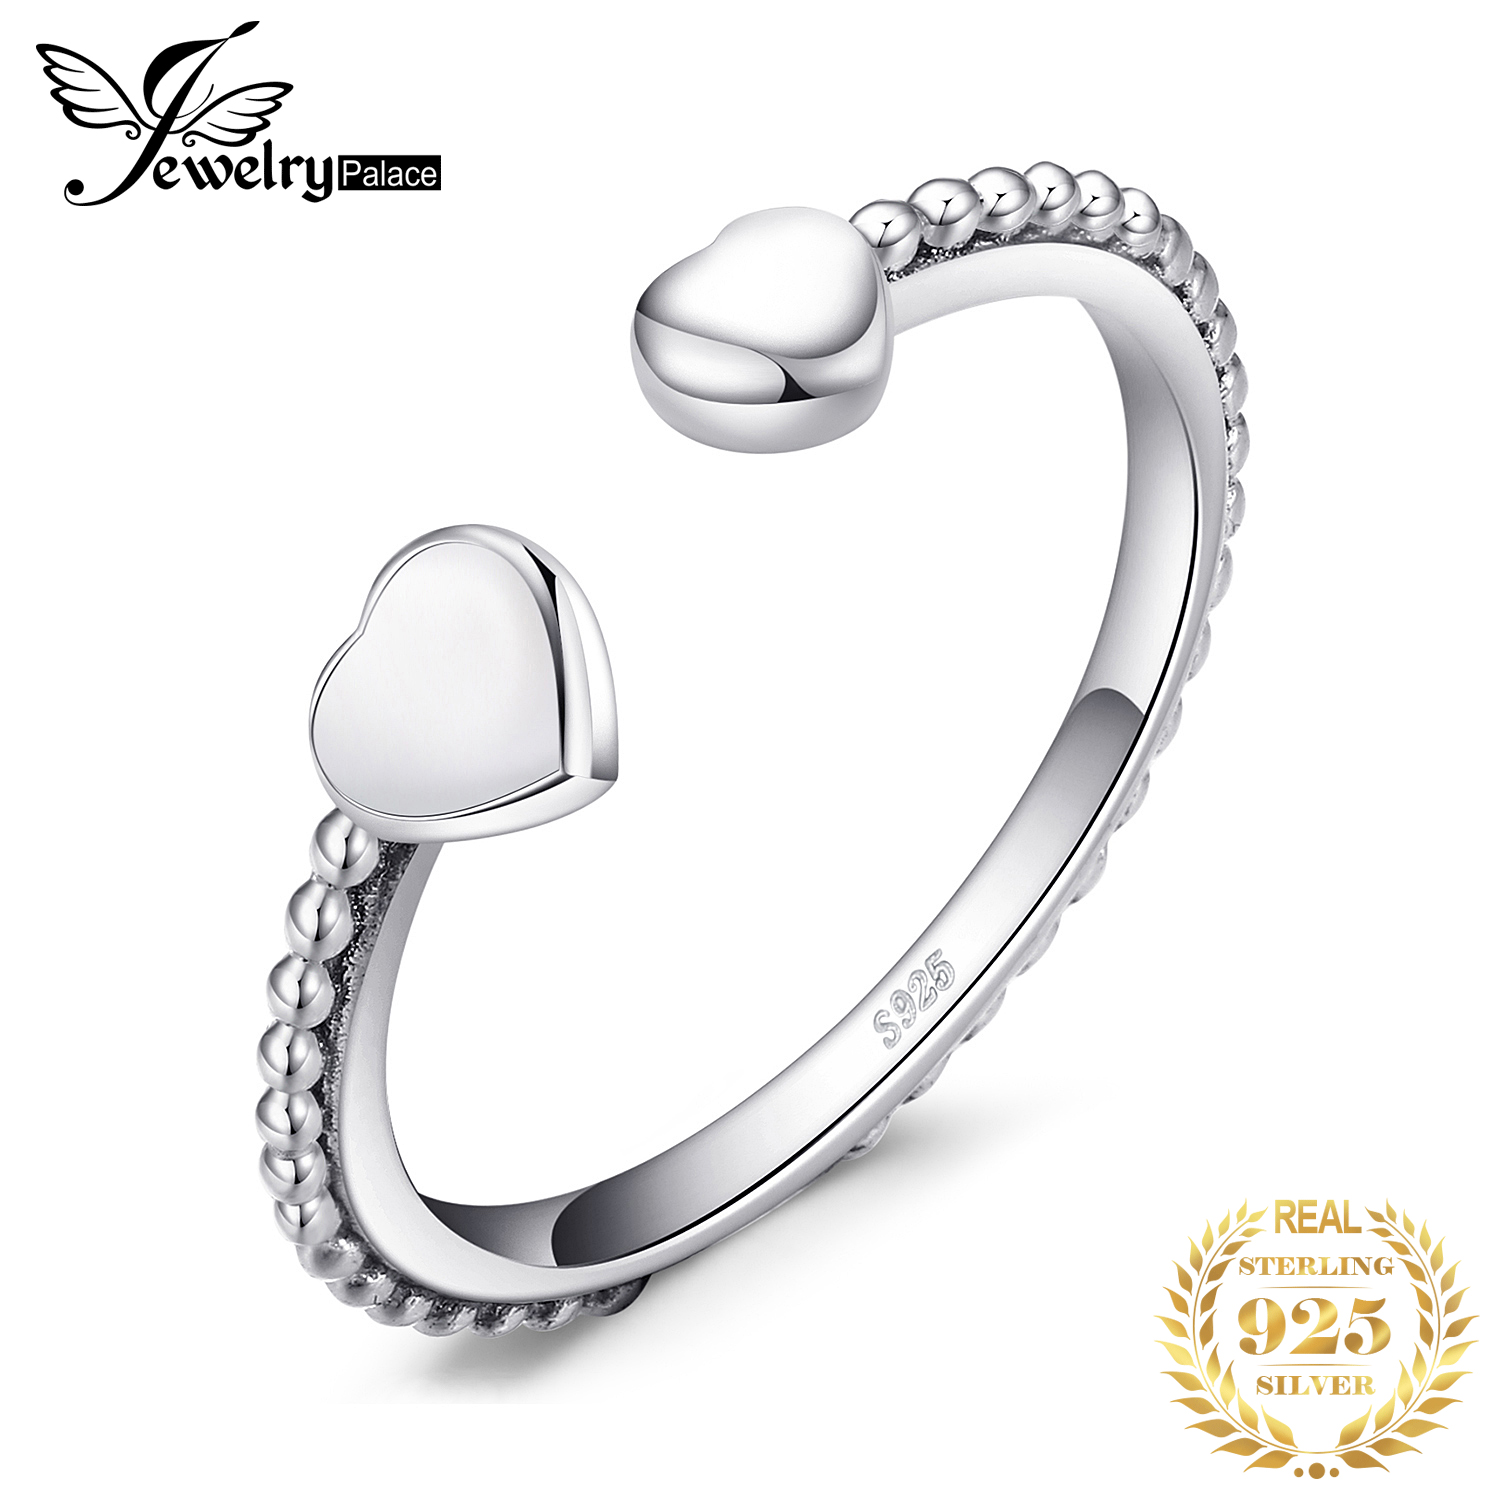 JewelryPalace 925 Sterling Silver Two Heart Open Ring 925 SterLing SiLver Gifts For Her Anniversary Fashion Jewelry New Arrival